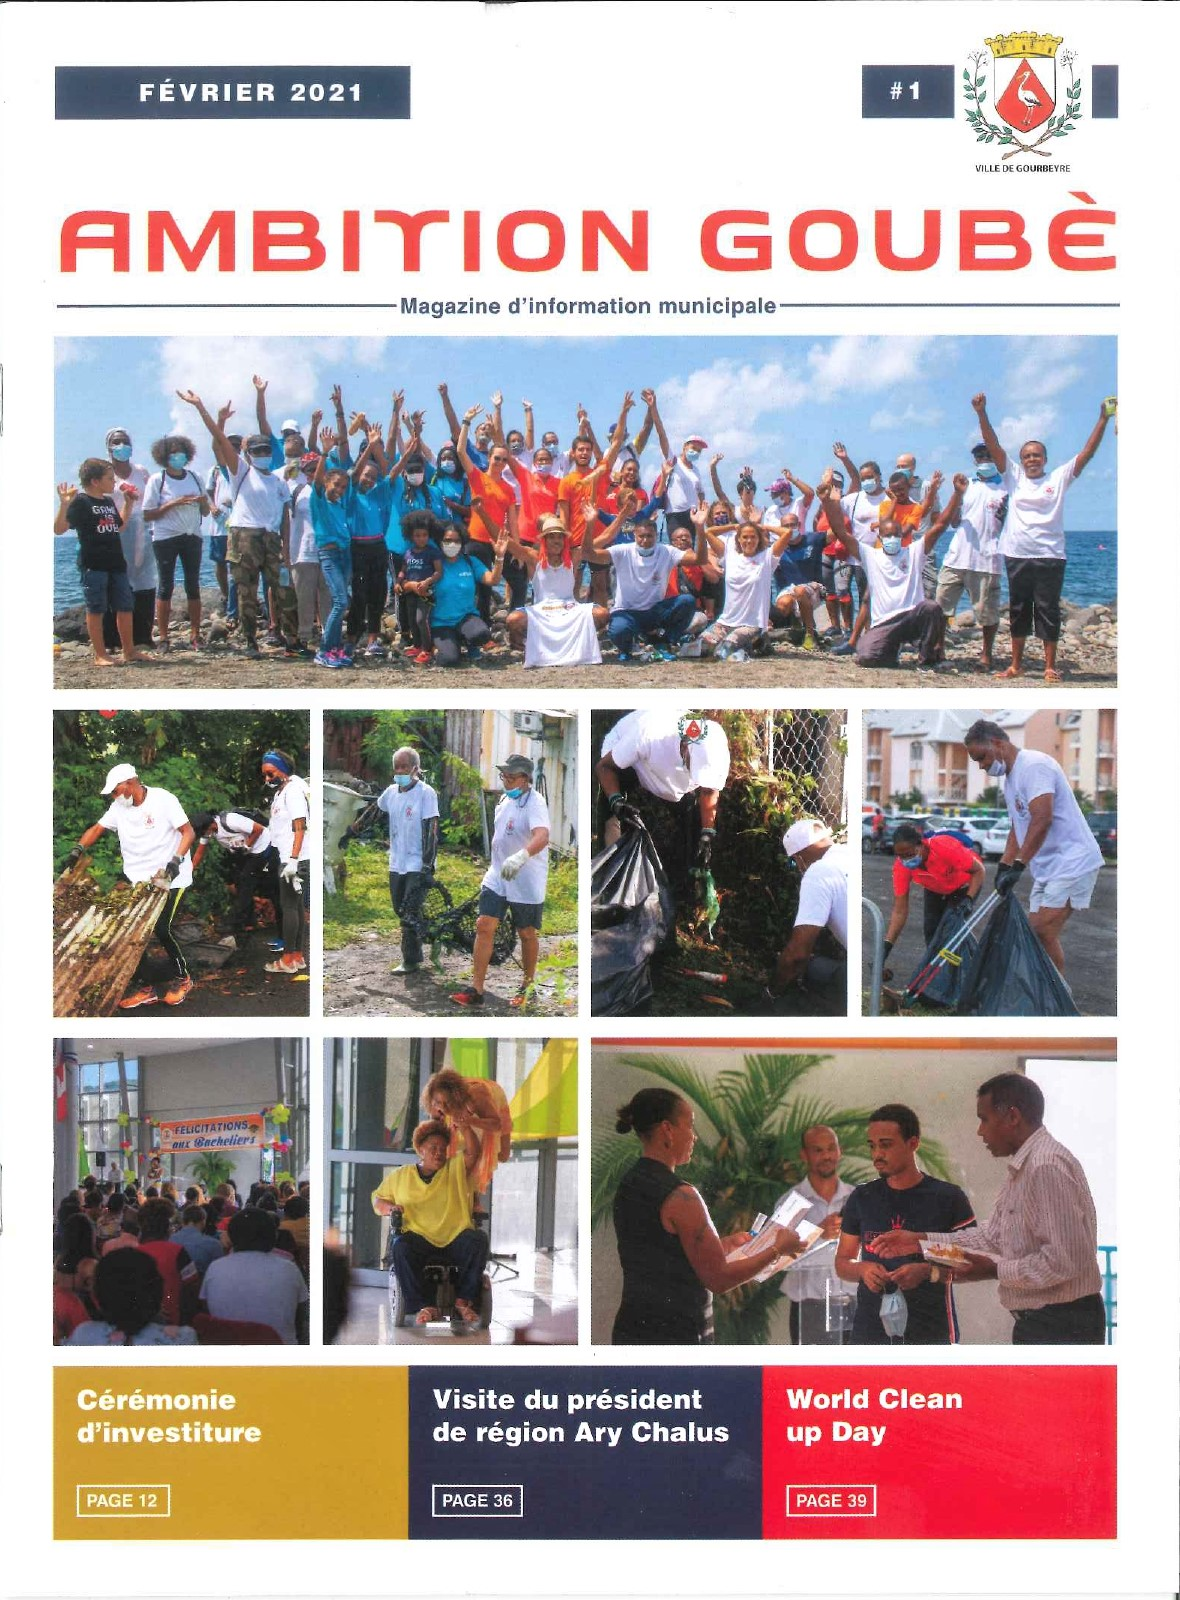 AMBITION GOUBE